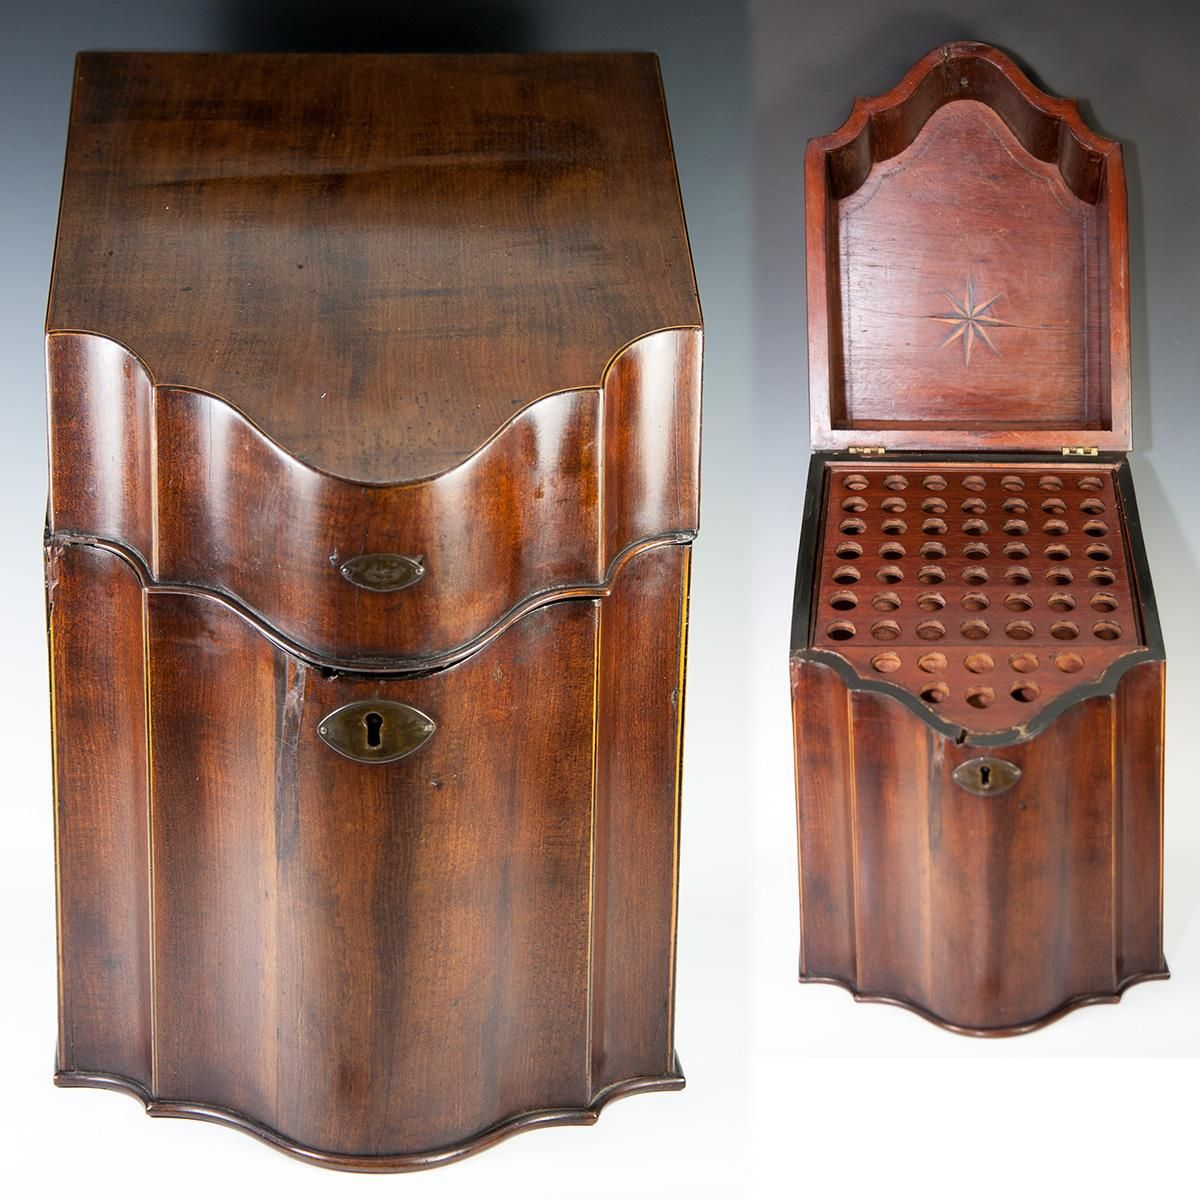 Antique Era Cutlery or Knife Box, Chest